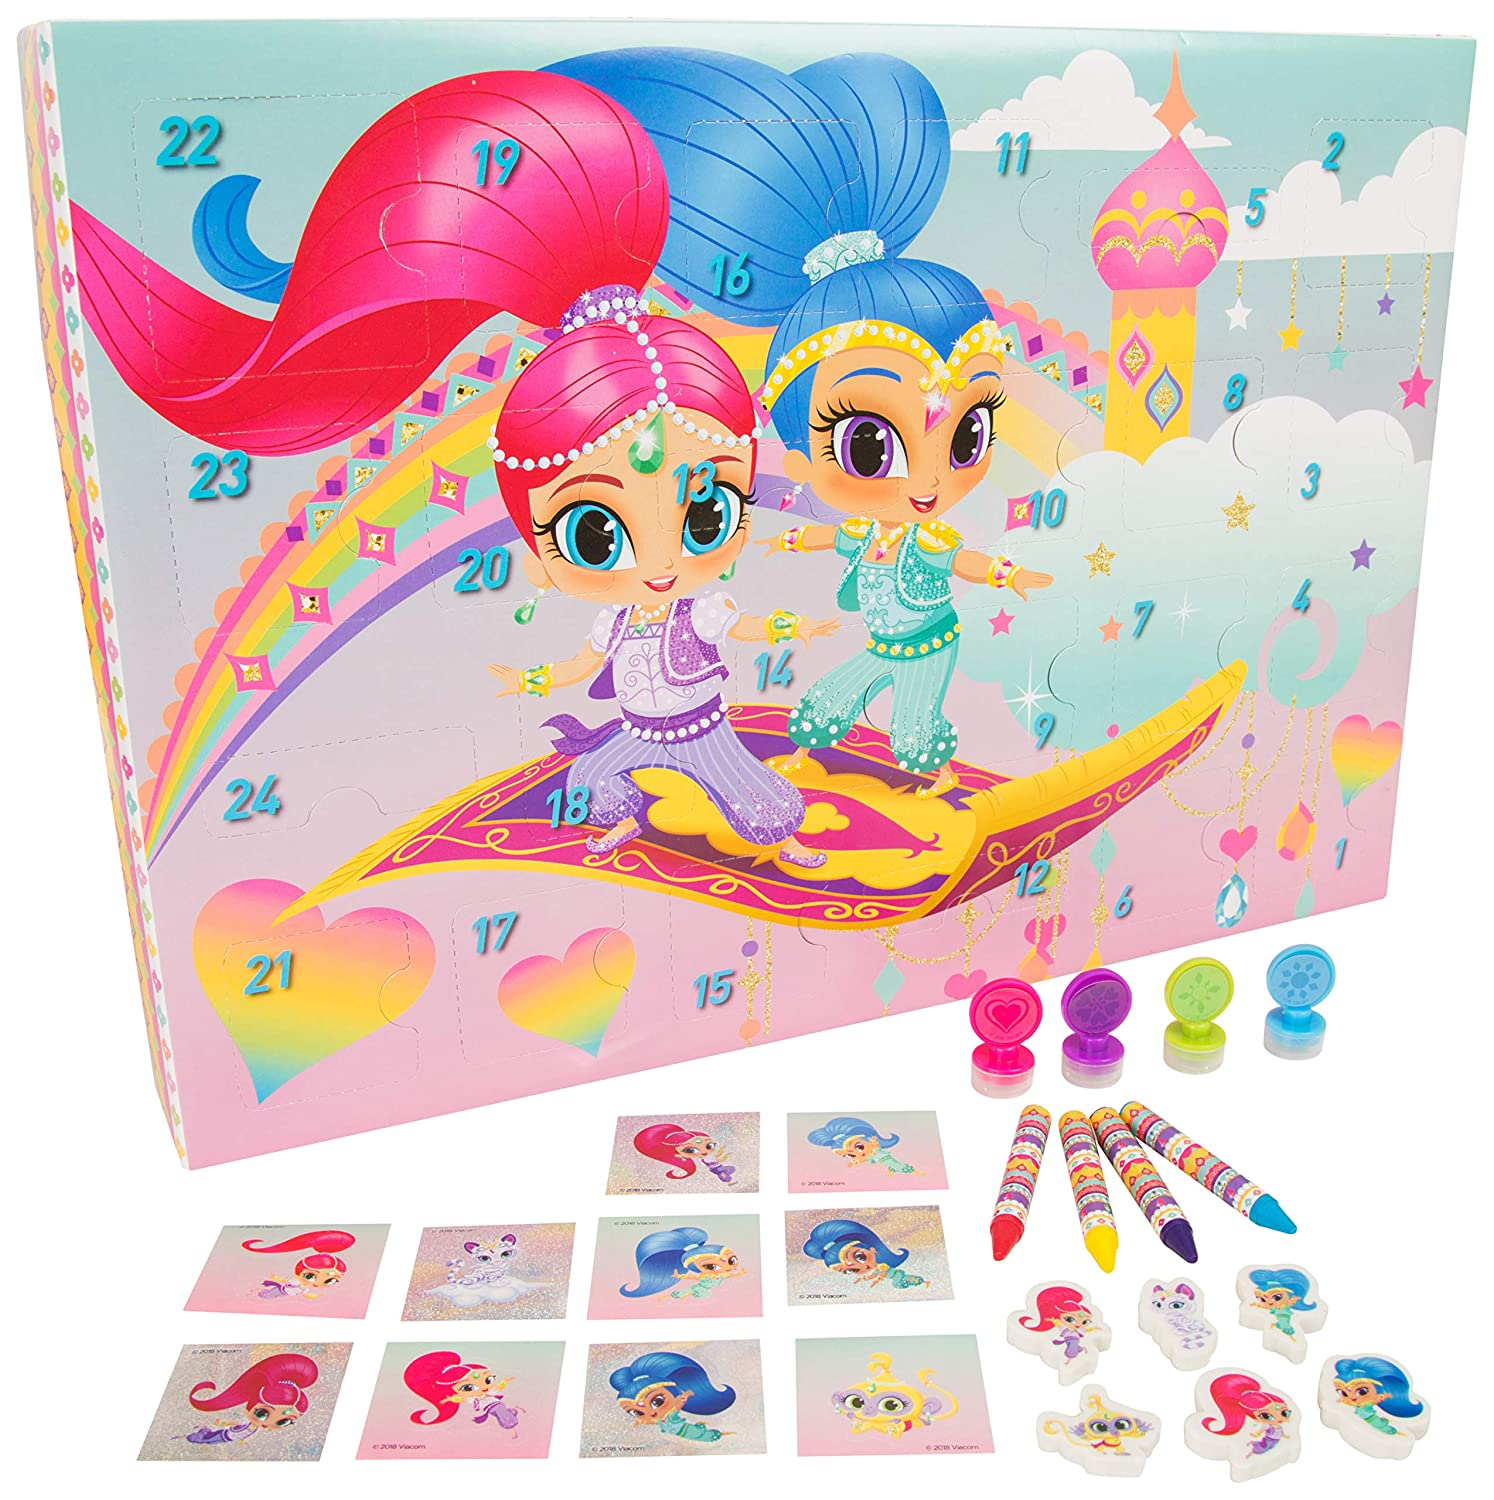 Shimmer and Shine SHI1-6710 Advent Calendar 2018, Multi Colour sambro